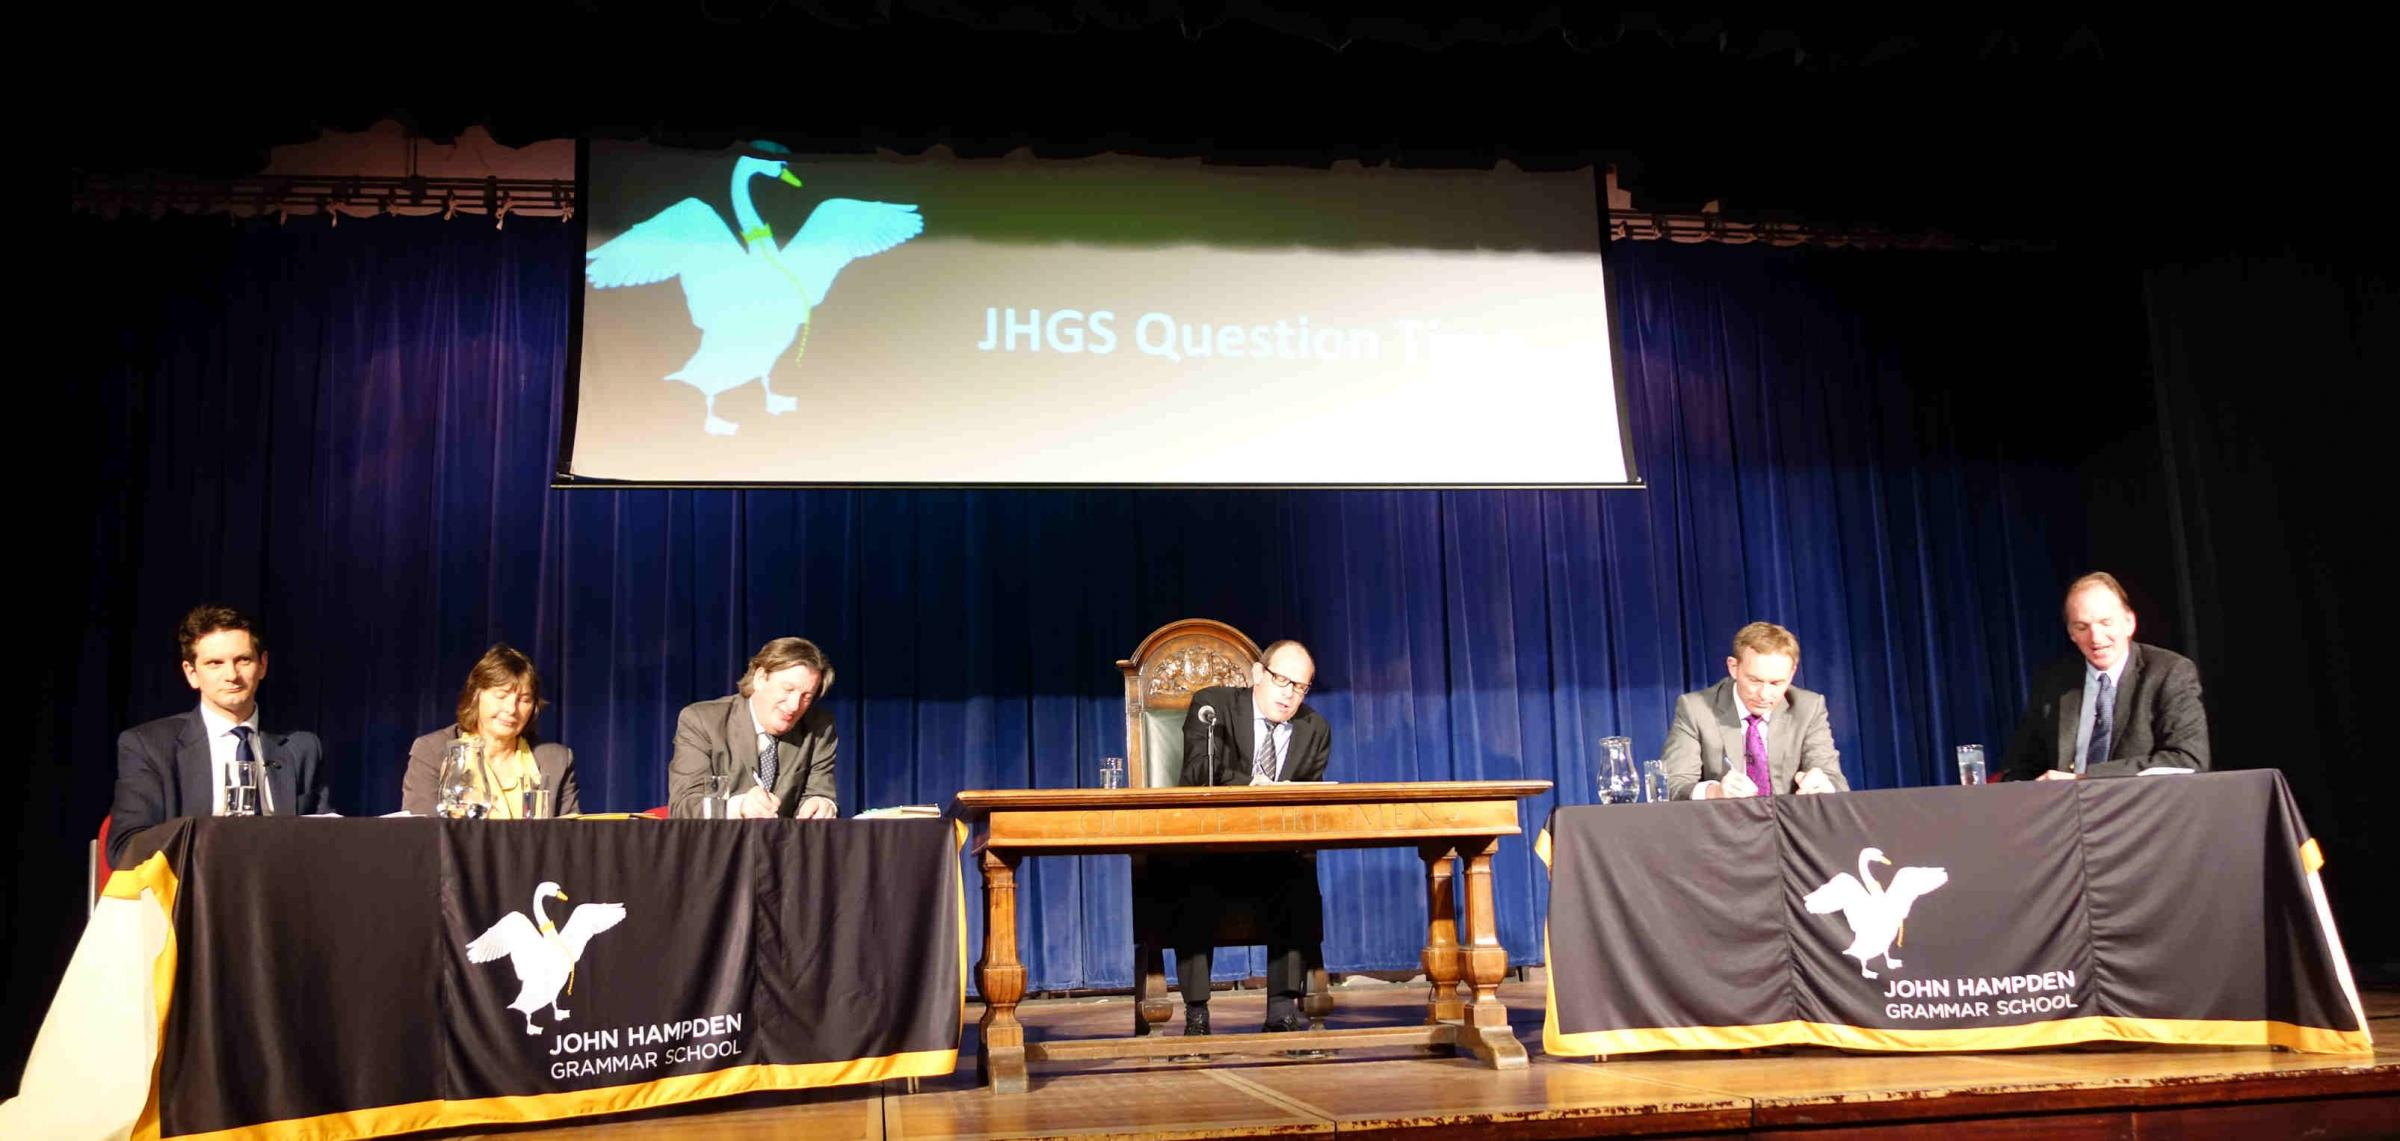 Politicians grilled at school's 'Question Time' event